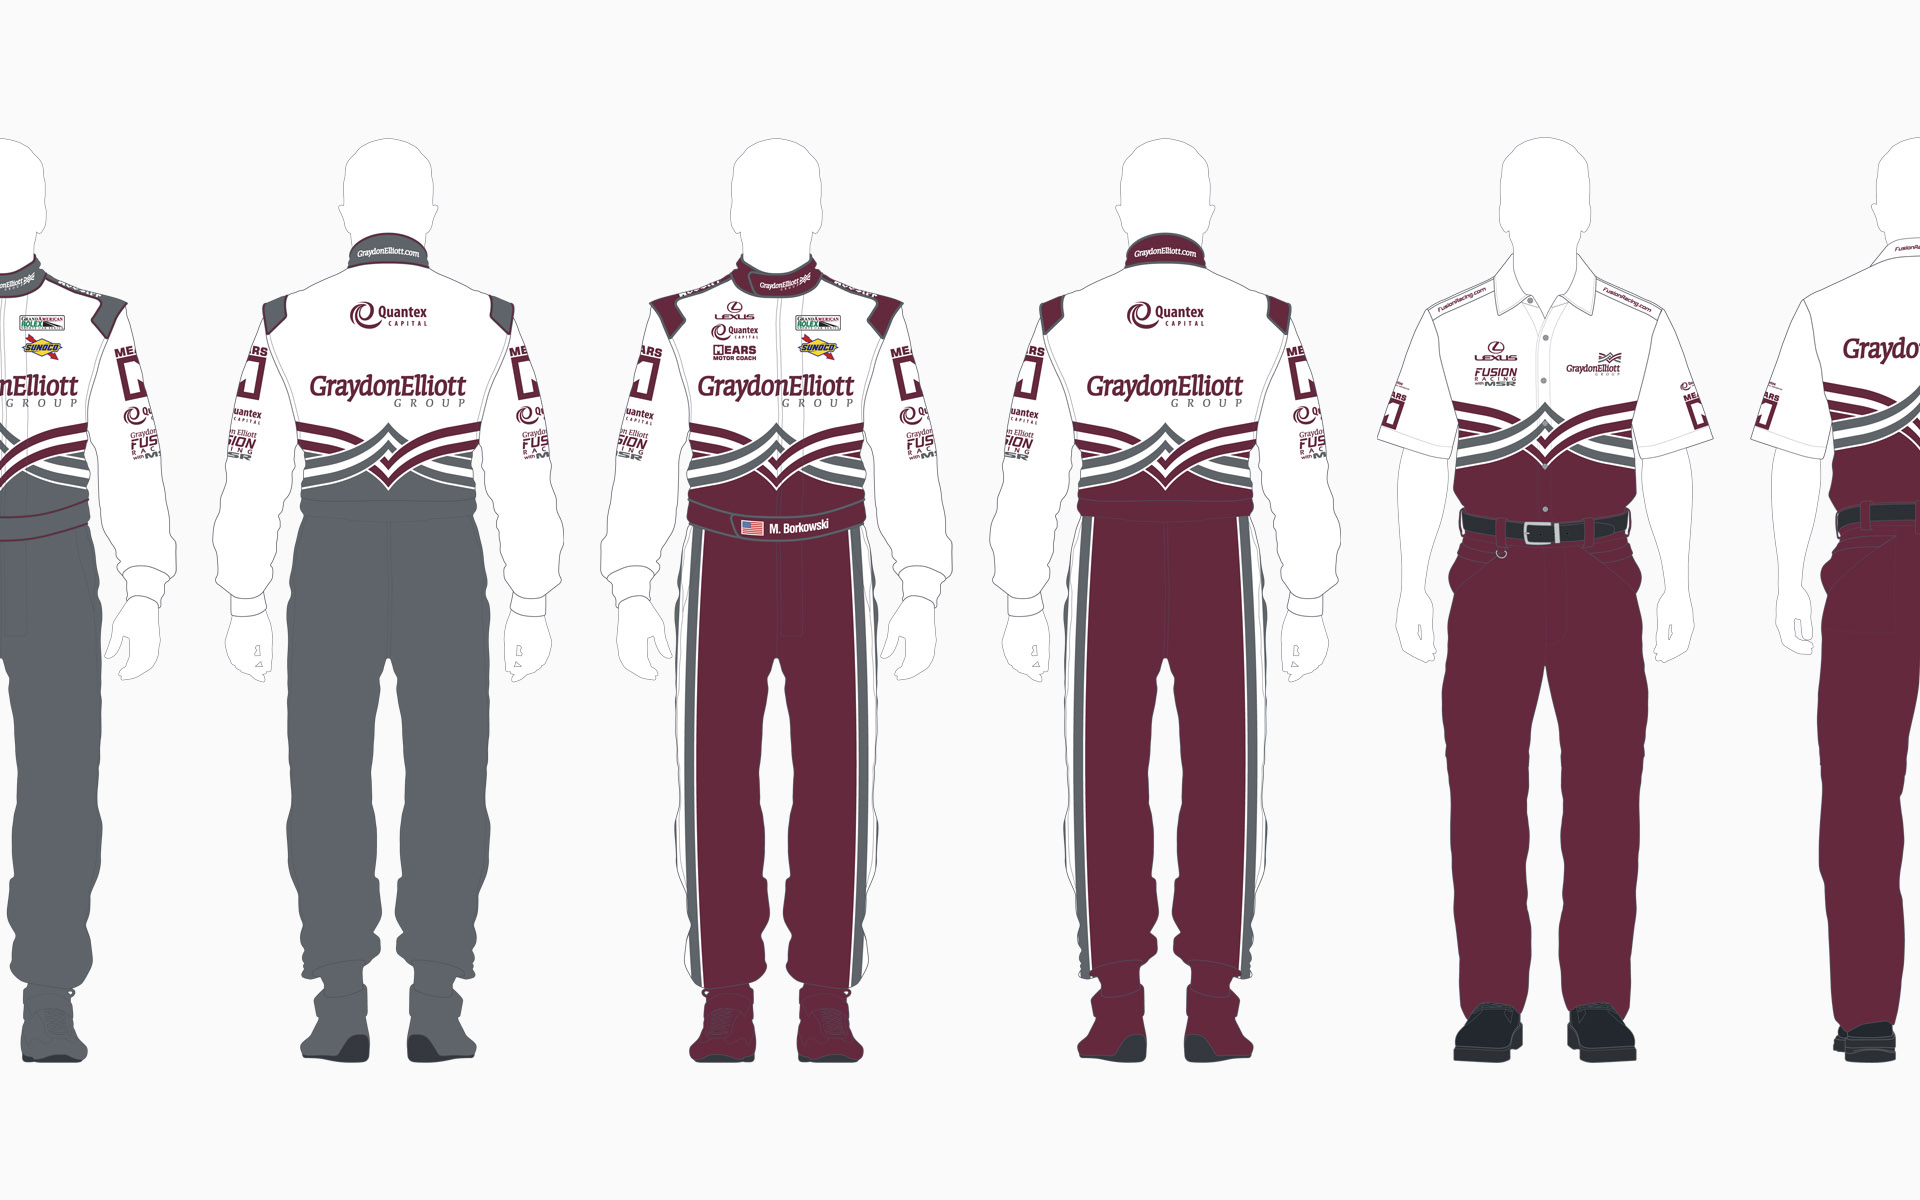 Michael Shank Racing Graydon Elliott Crew Shirt and Firesuit